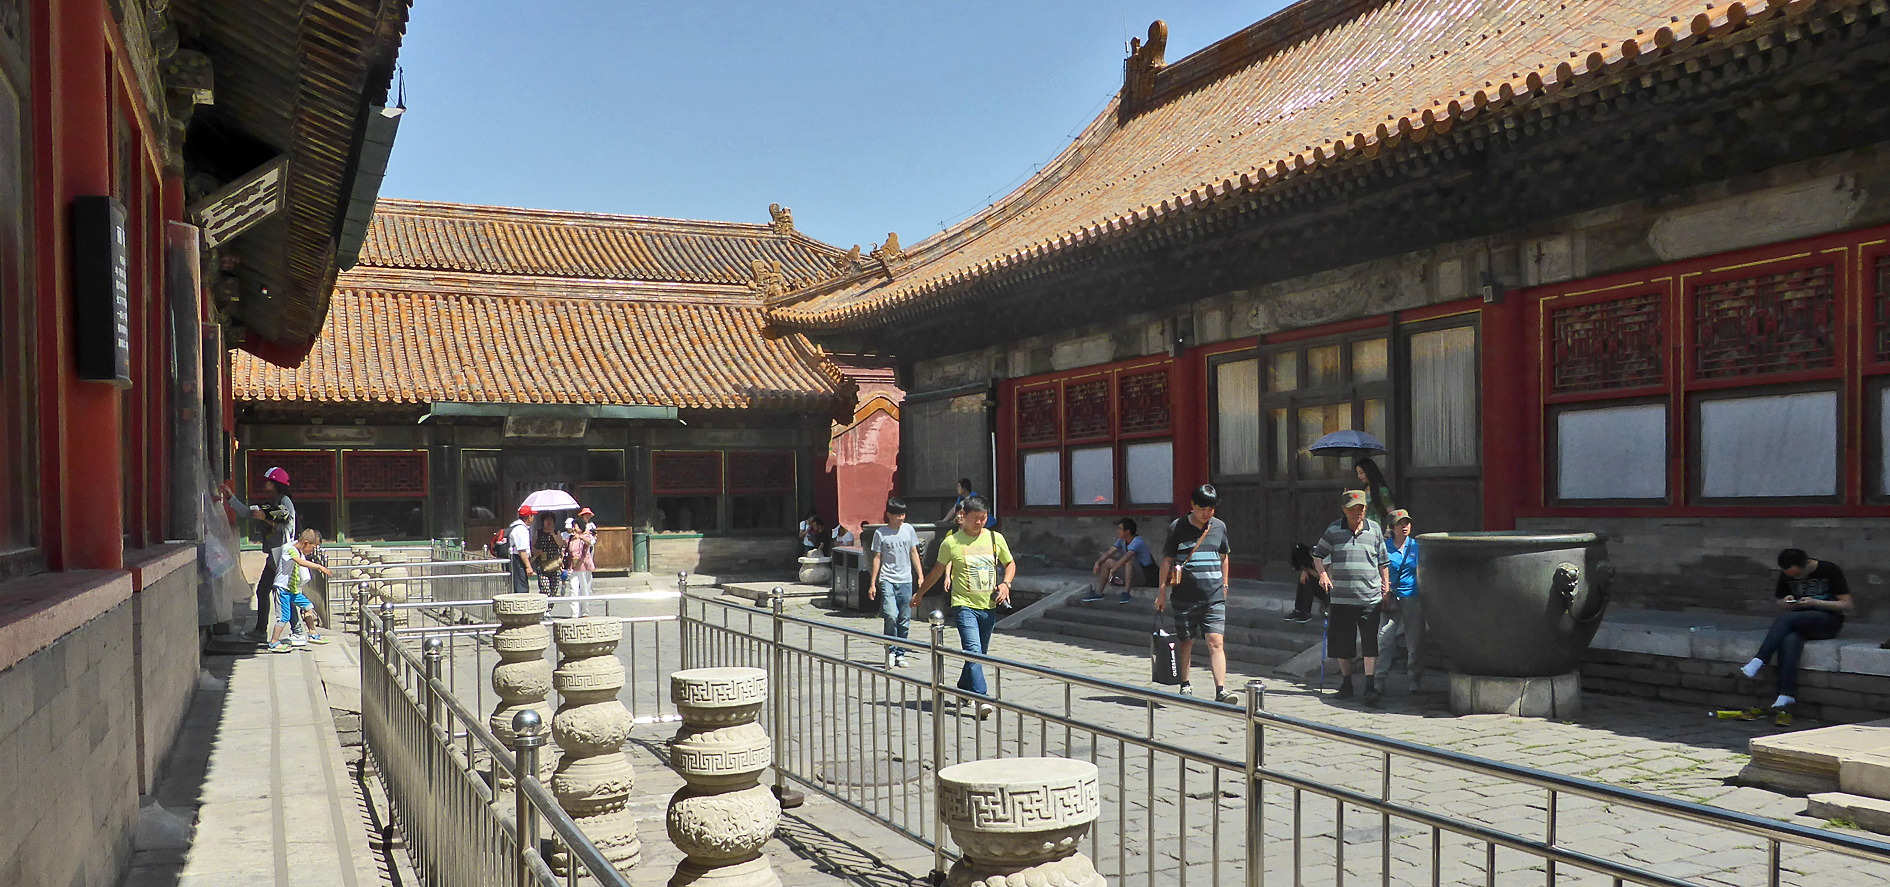 Forbidden city: where the concubines lived